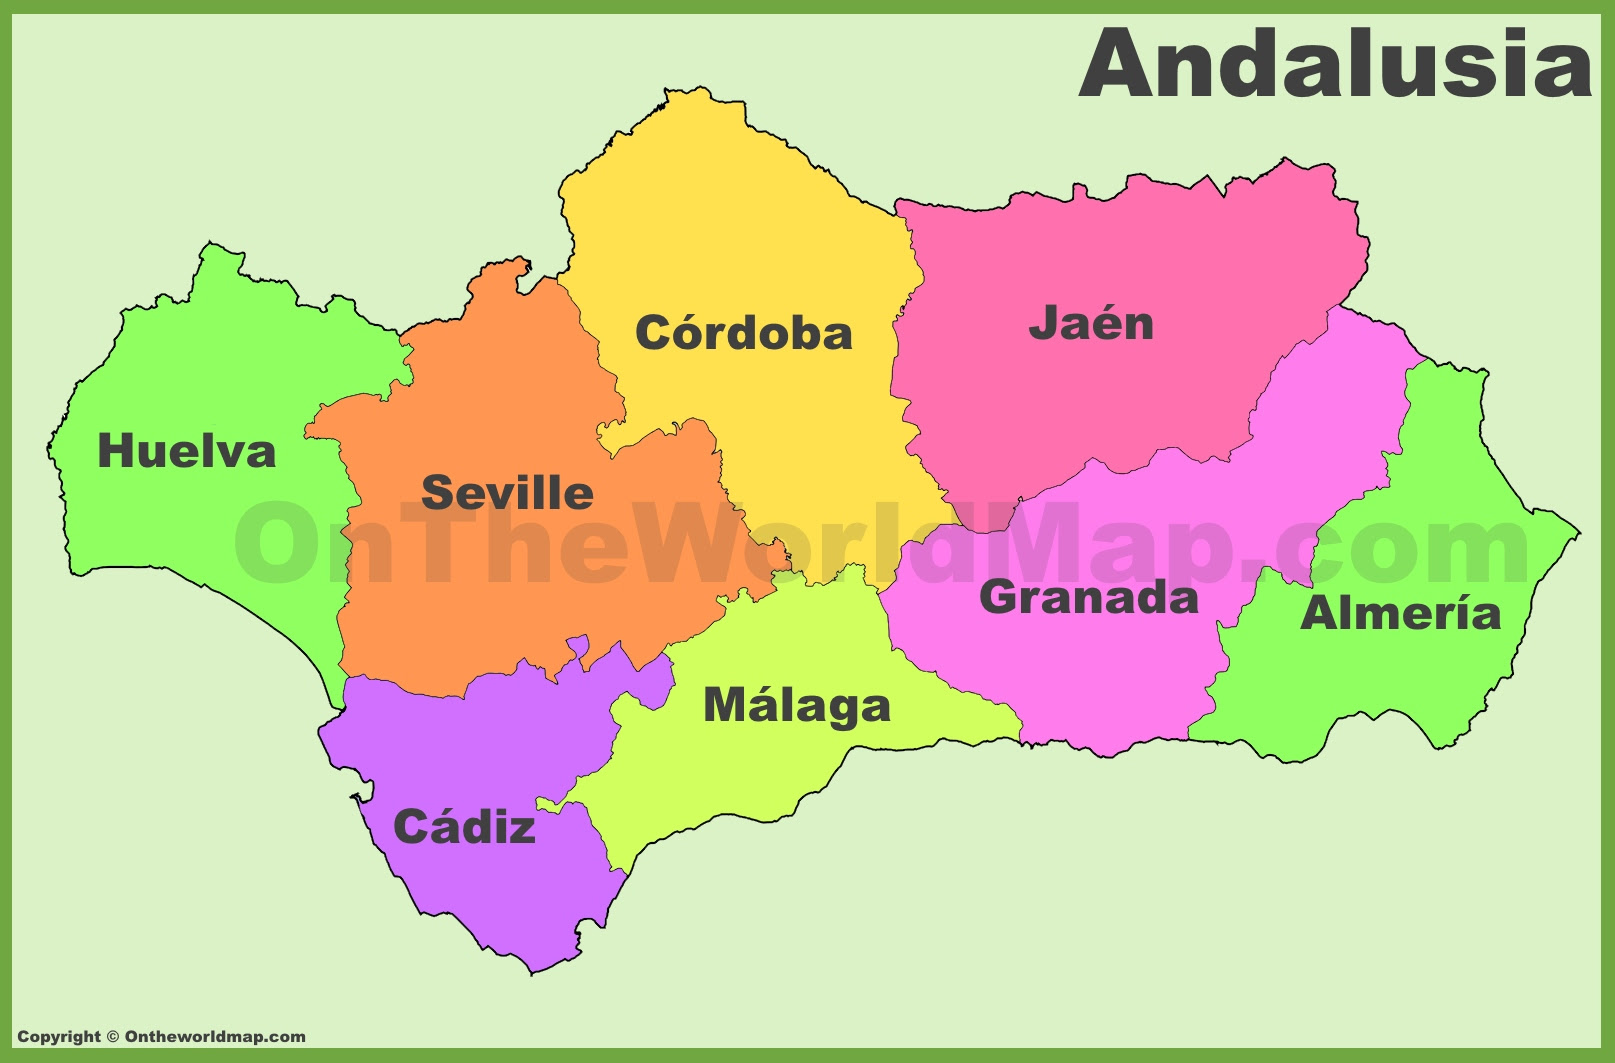 andalusia provinces map